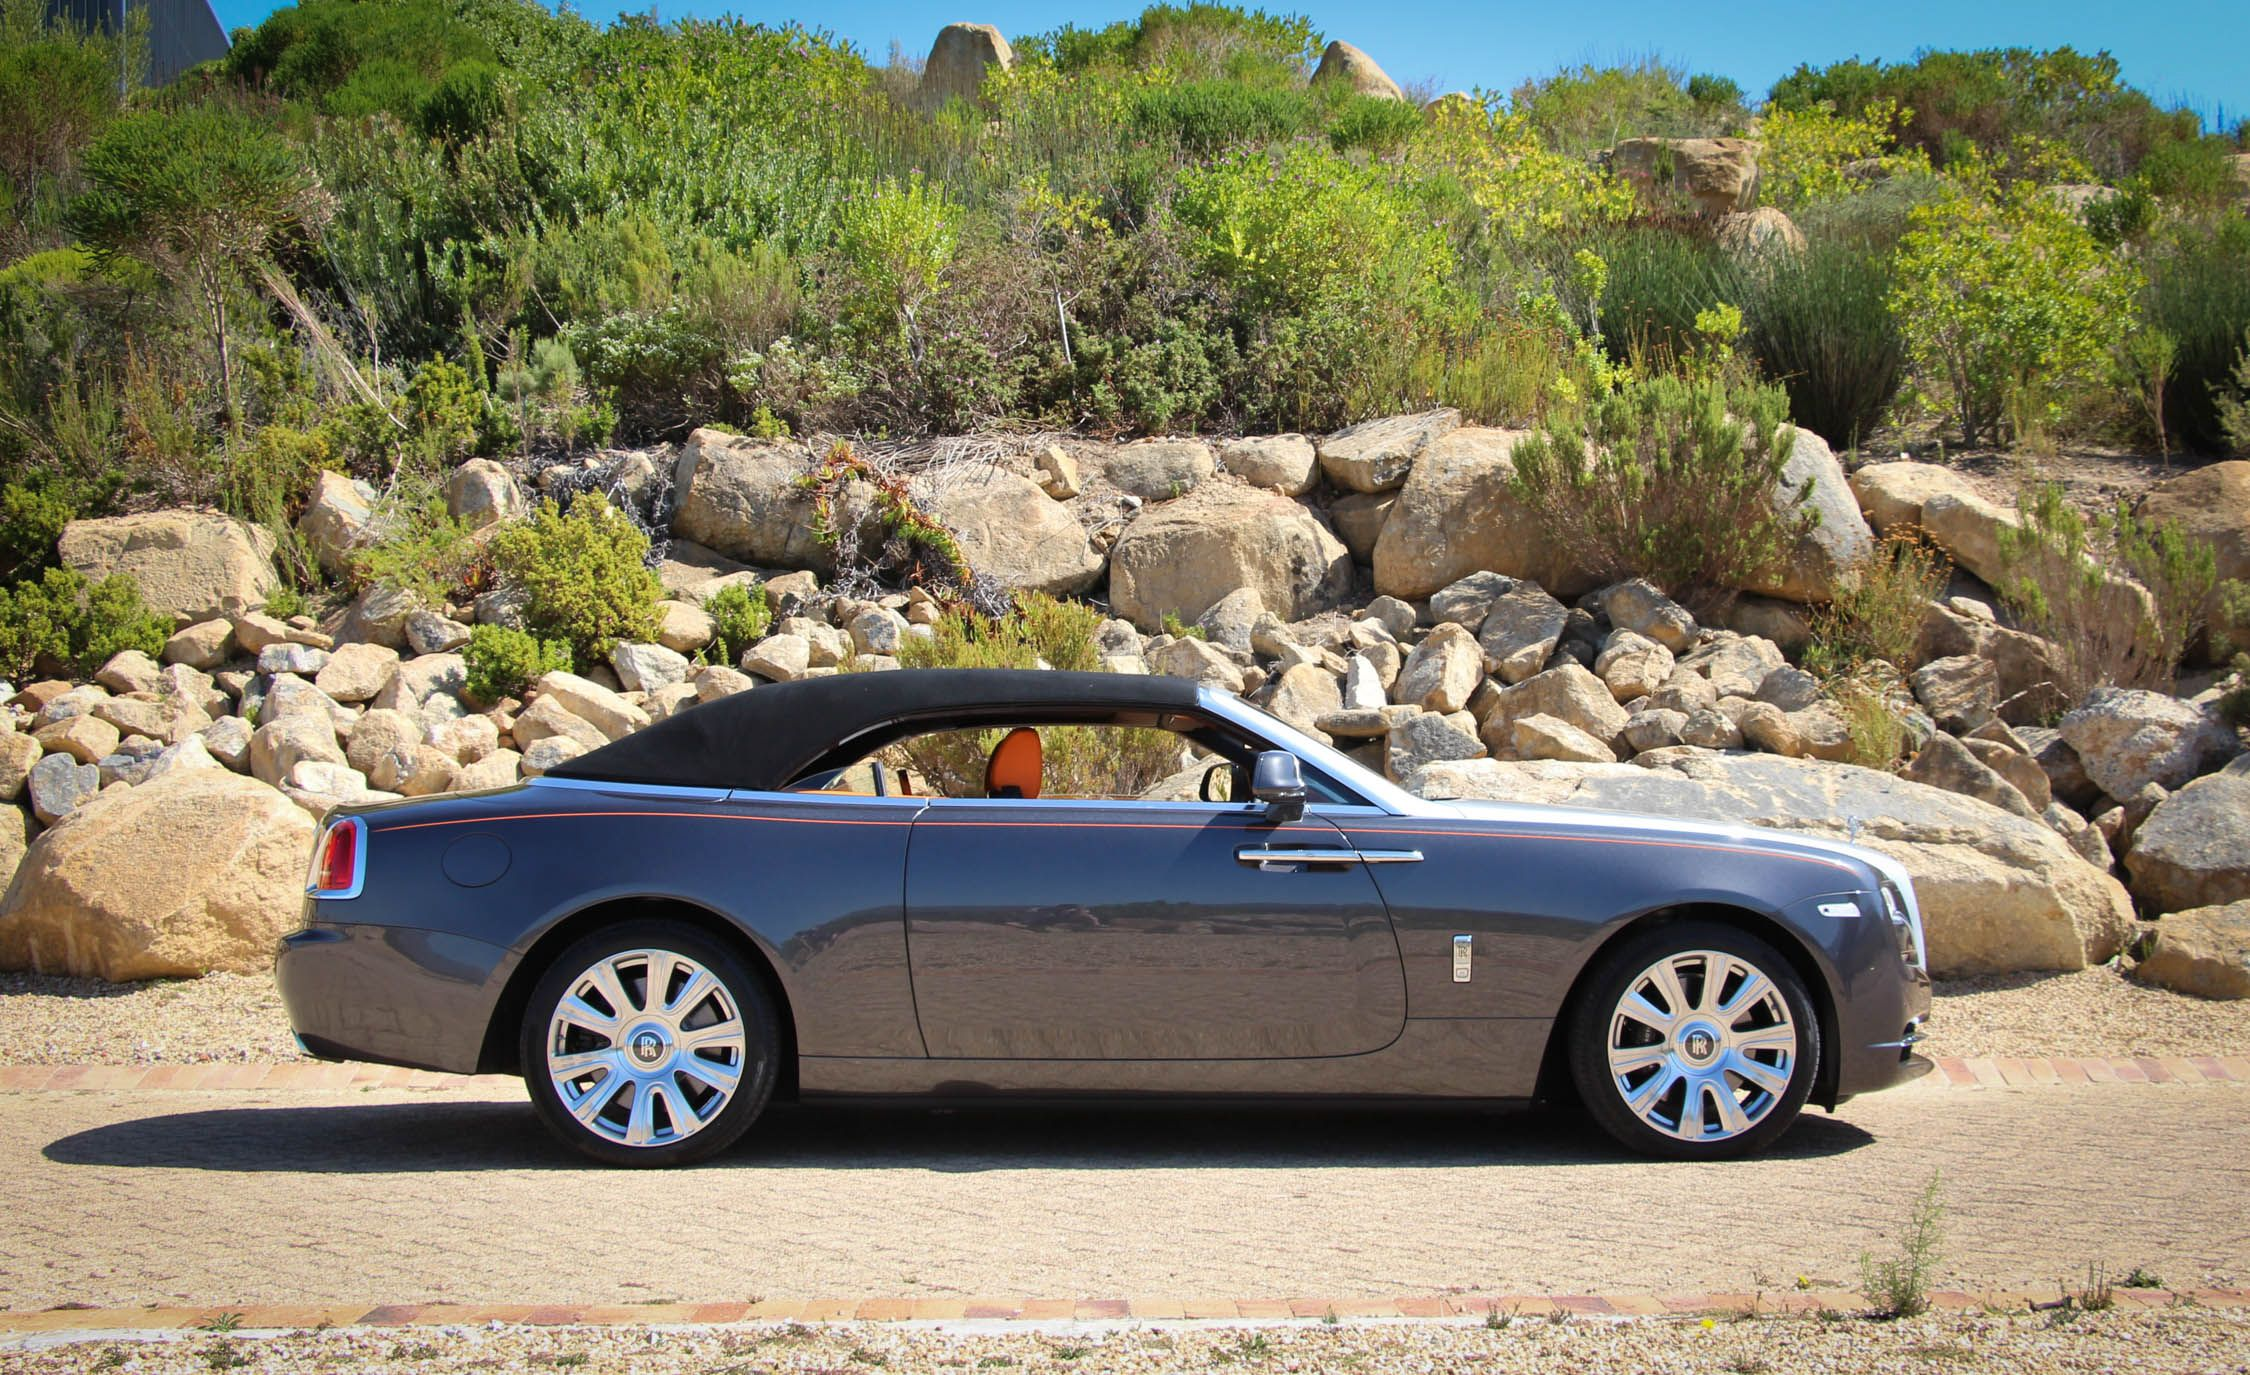 Rolls-Royce Dawn Reviews | Rolls-Royce Dawn Price, Photos, and Specs ...